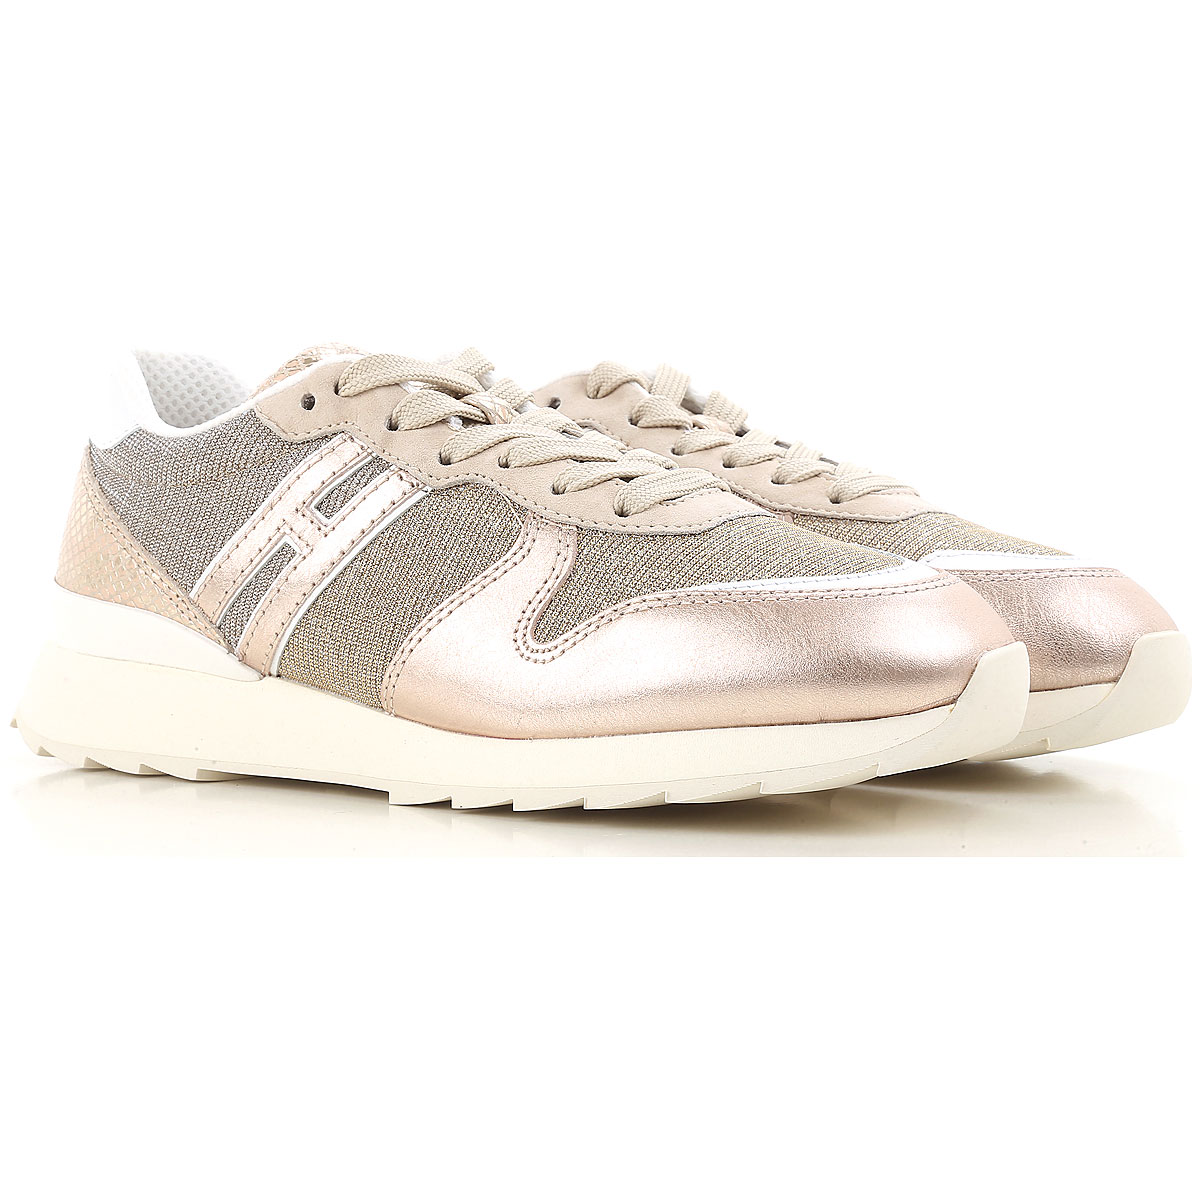 Hogan Sneakers for Women, Golden Pink, Leather, 2017, 10 6 7 8 9